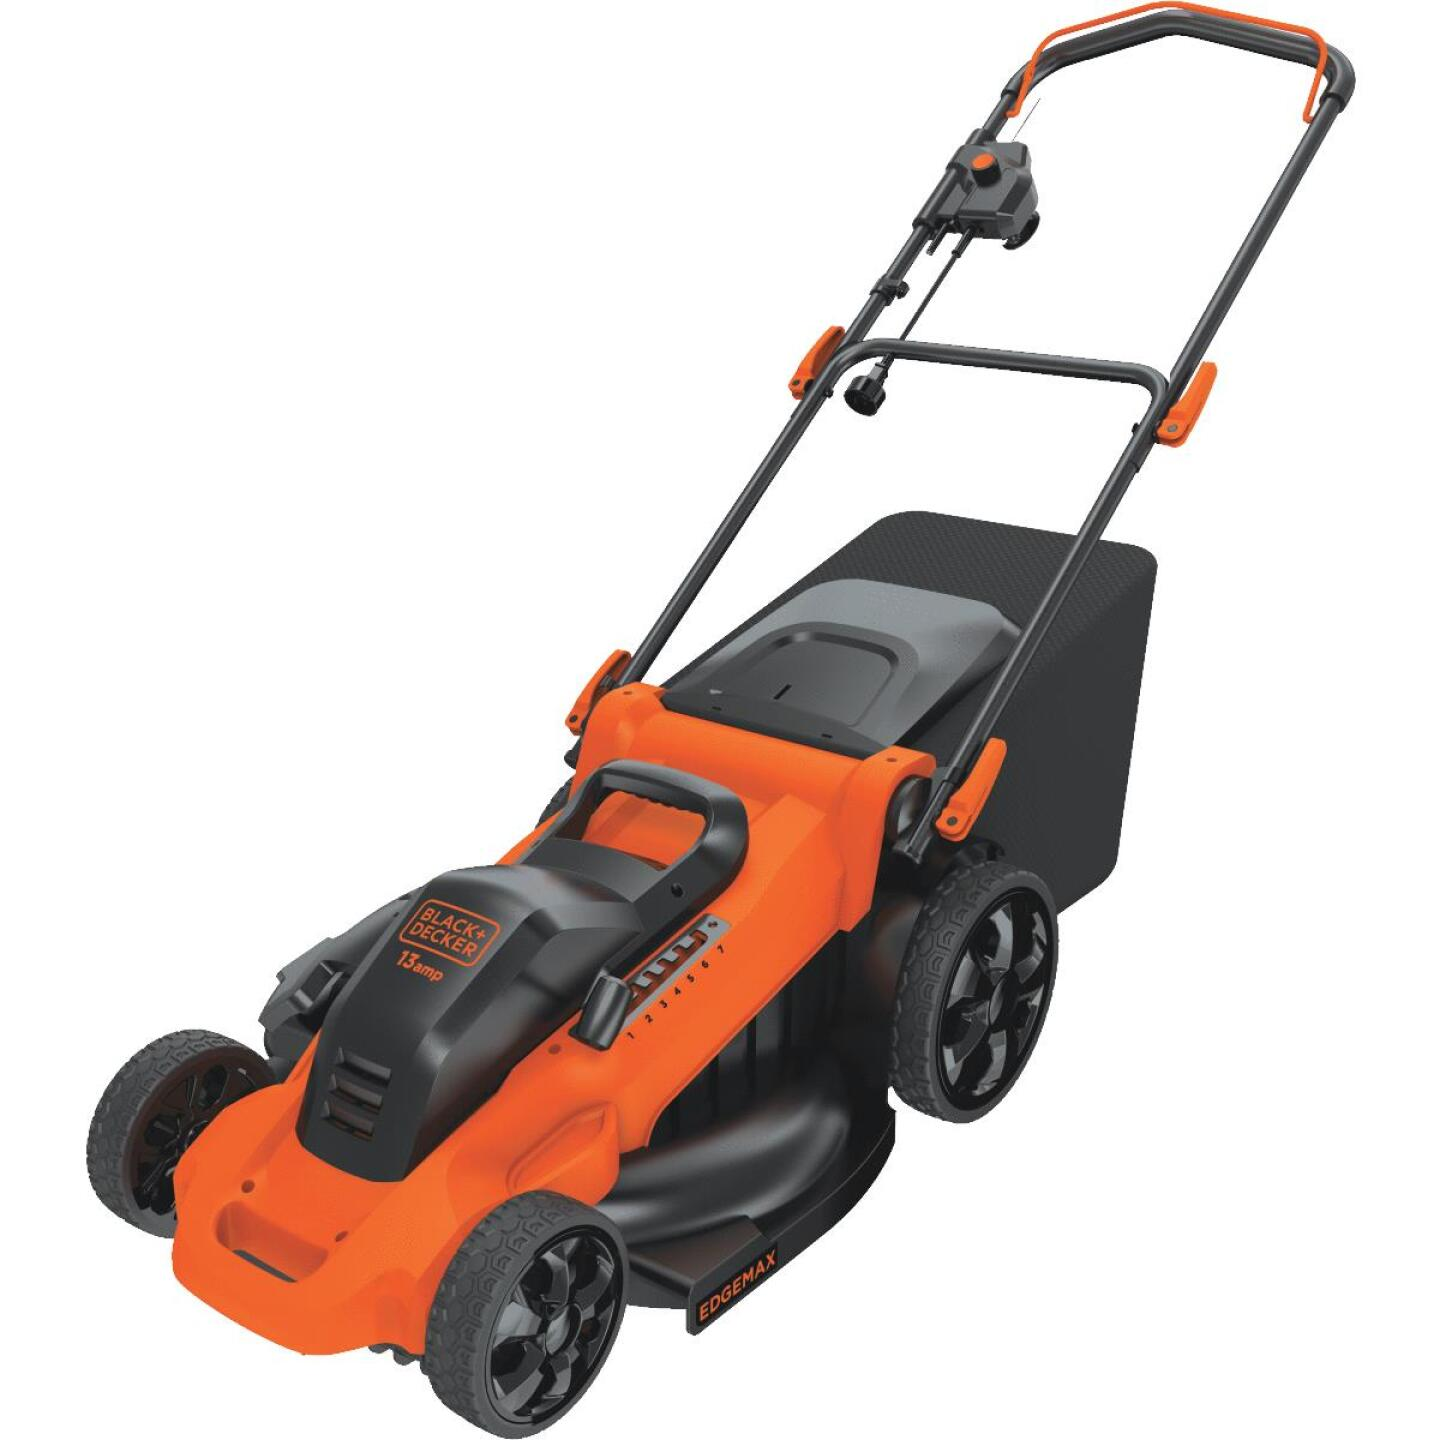 Black & Decker 20 In. 13A Push Electric Lawn Mower Image 5